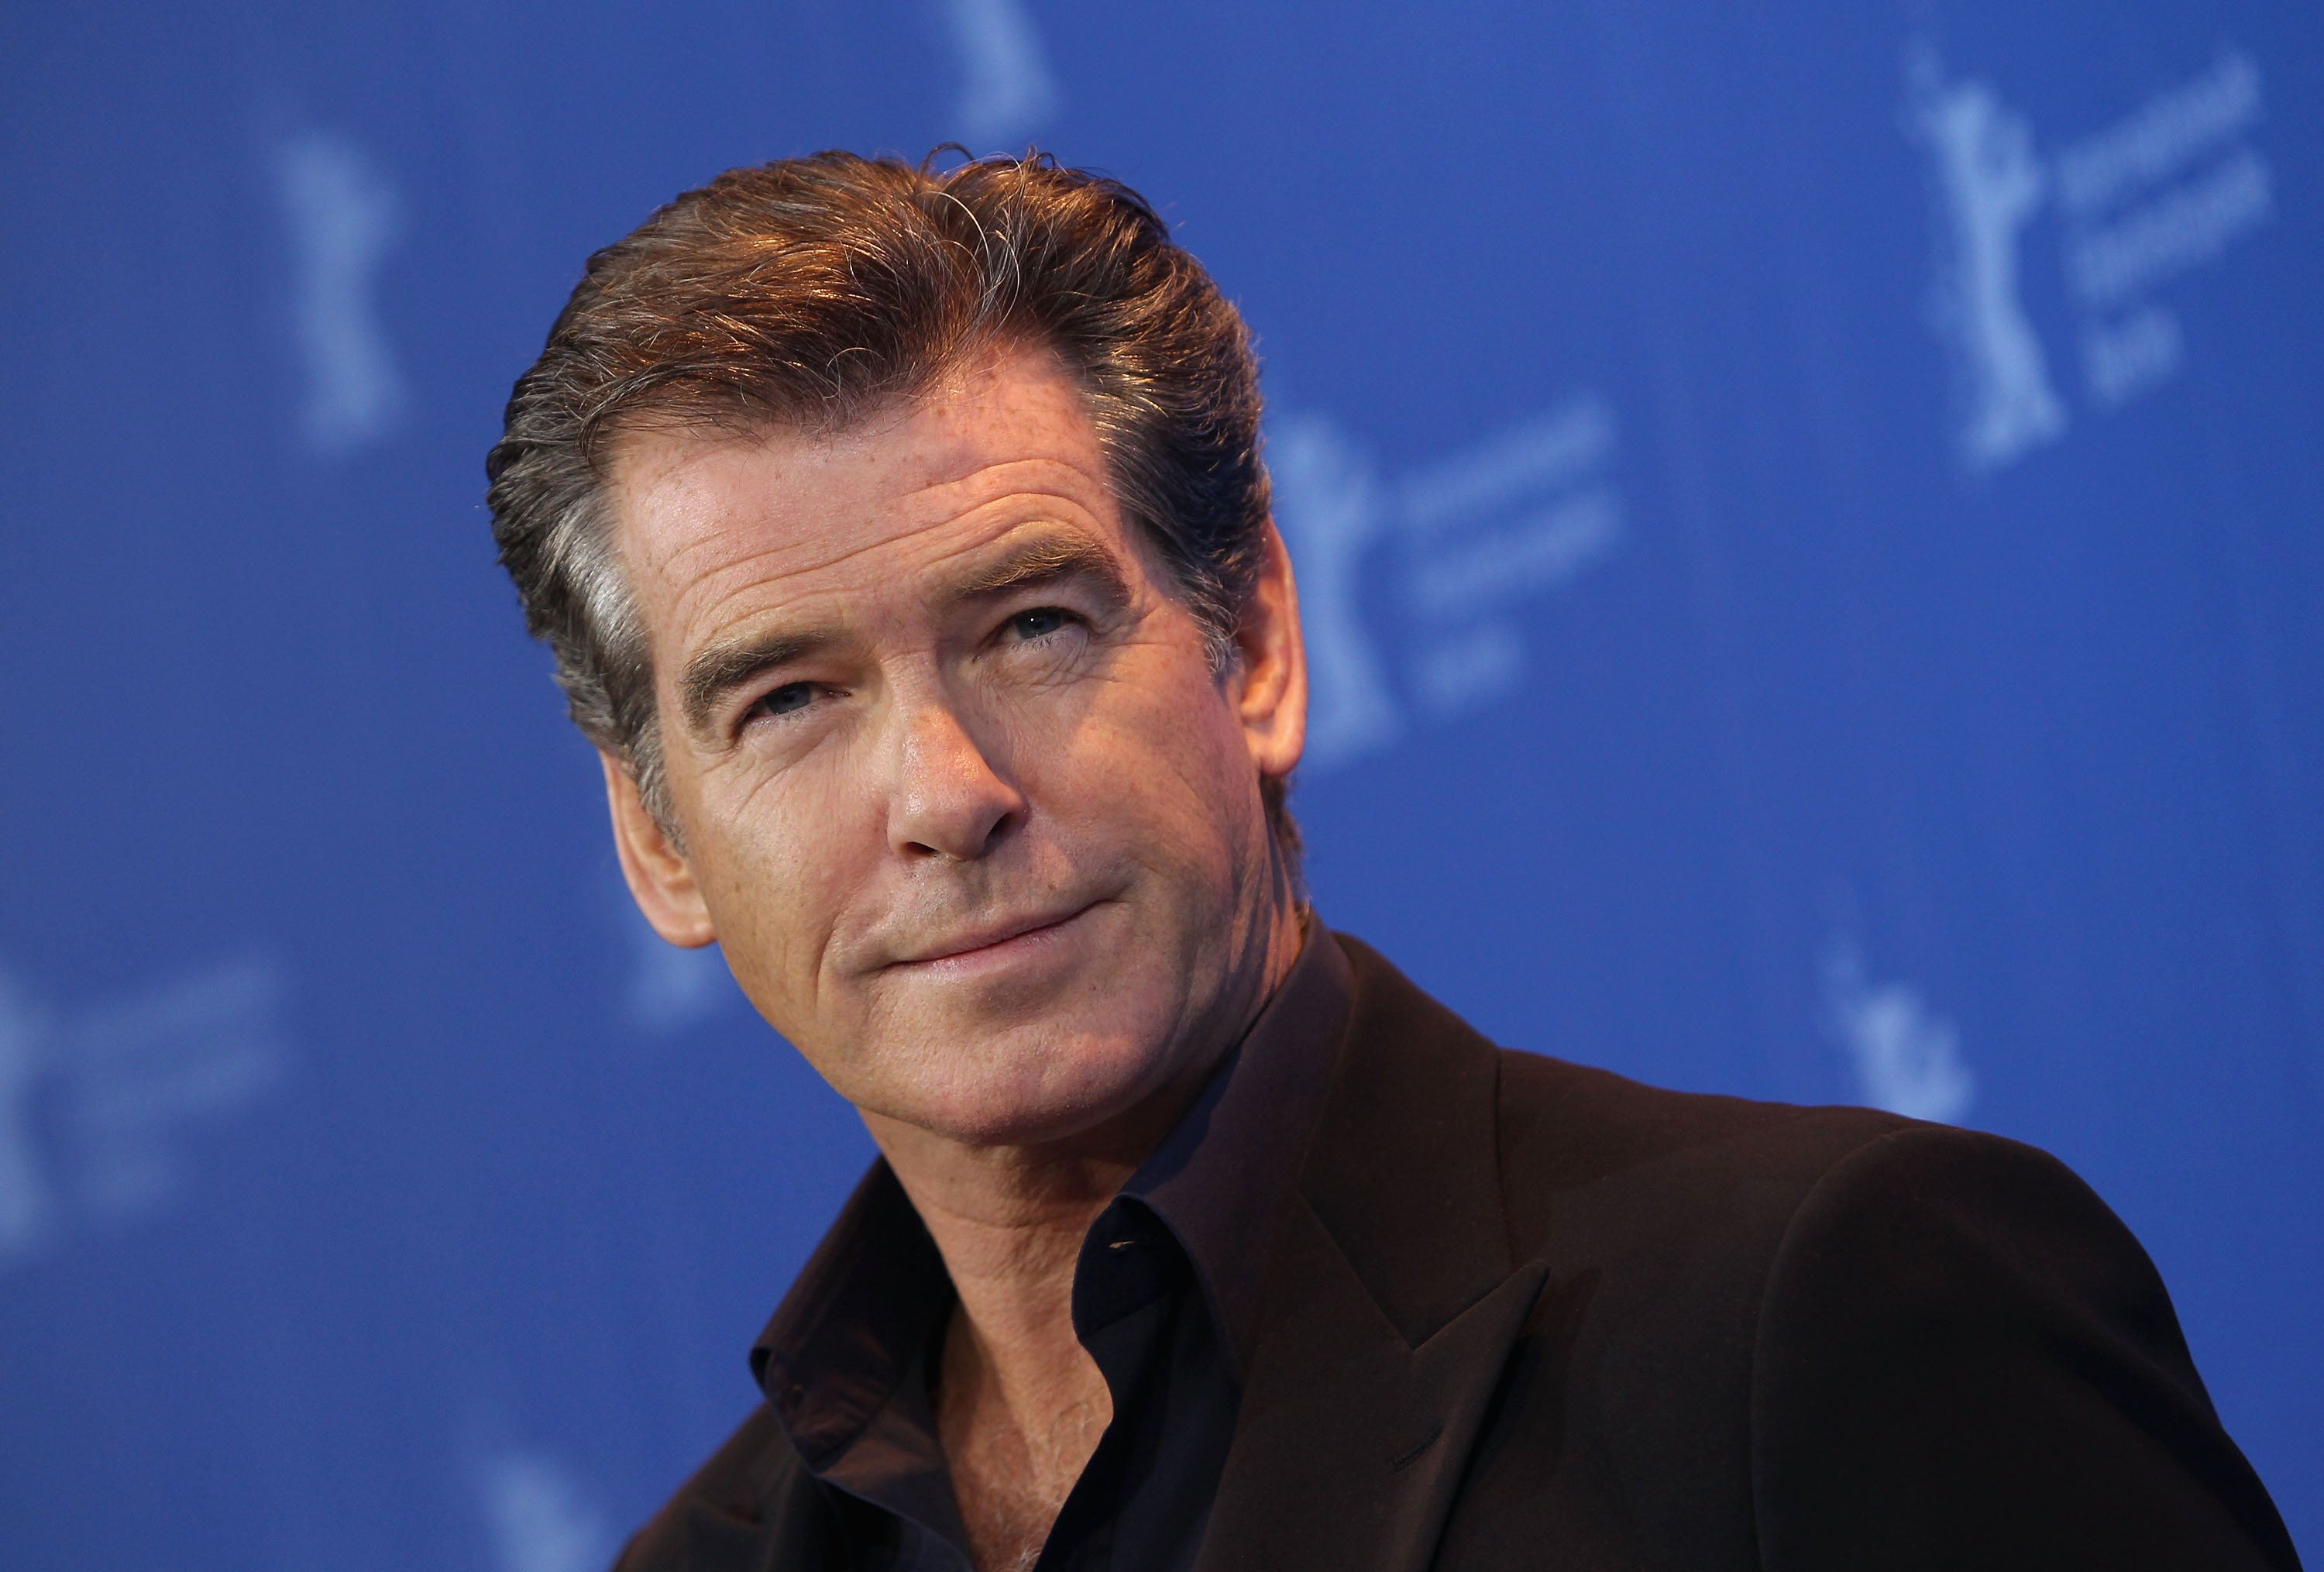 Pierce Brosnan at the 60th Berlin International Film Festival at the Grand Hyatt Hotel on February 12, 2010. | Photo: GettyImages